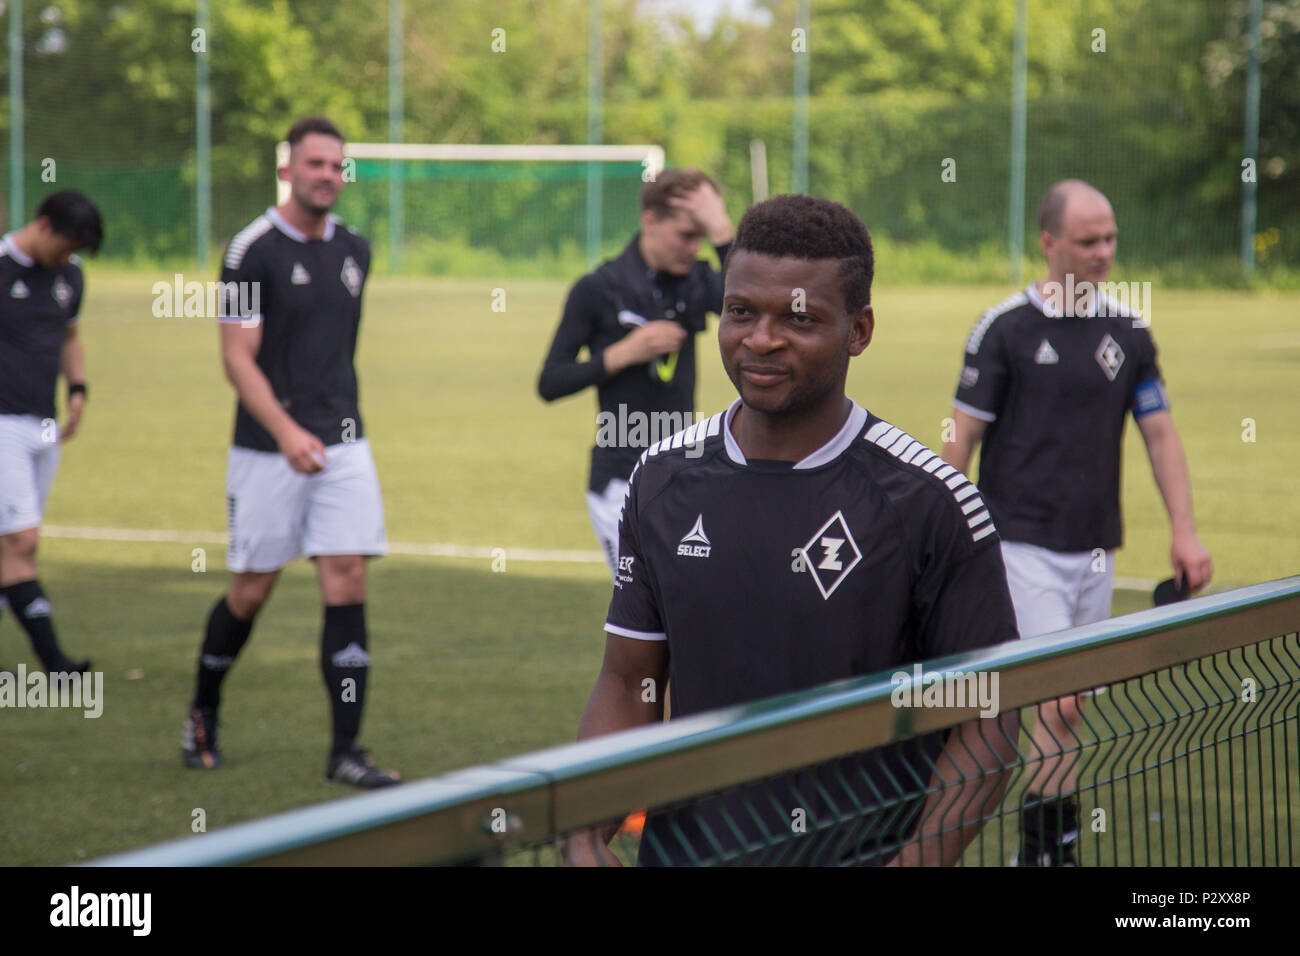 Saheed Olakunle Adeshina, player of local football club AKS Zly after a game - Stock Image